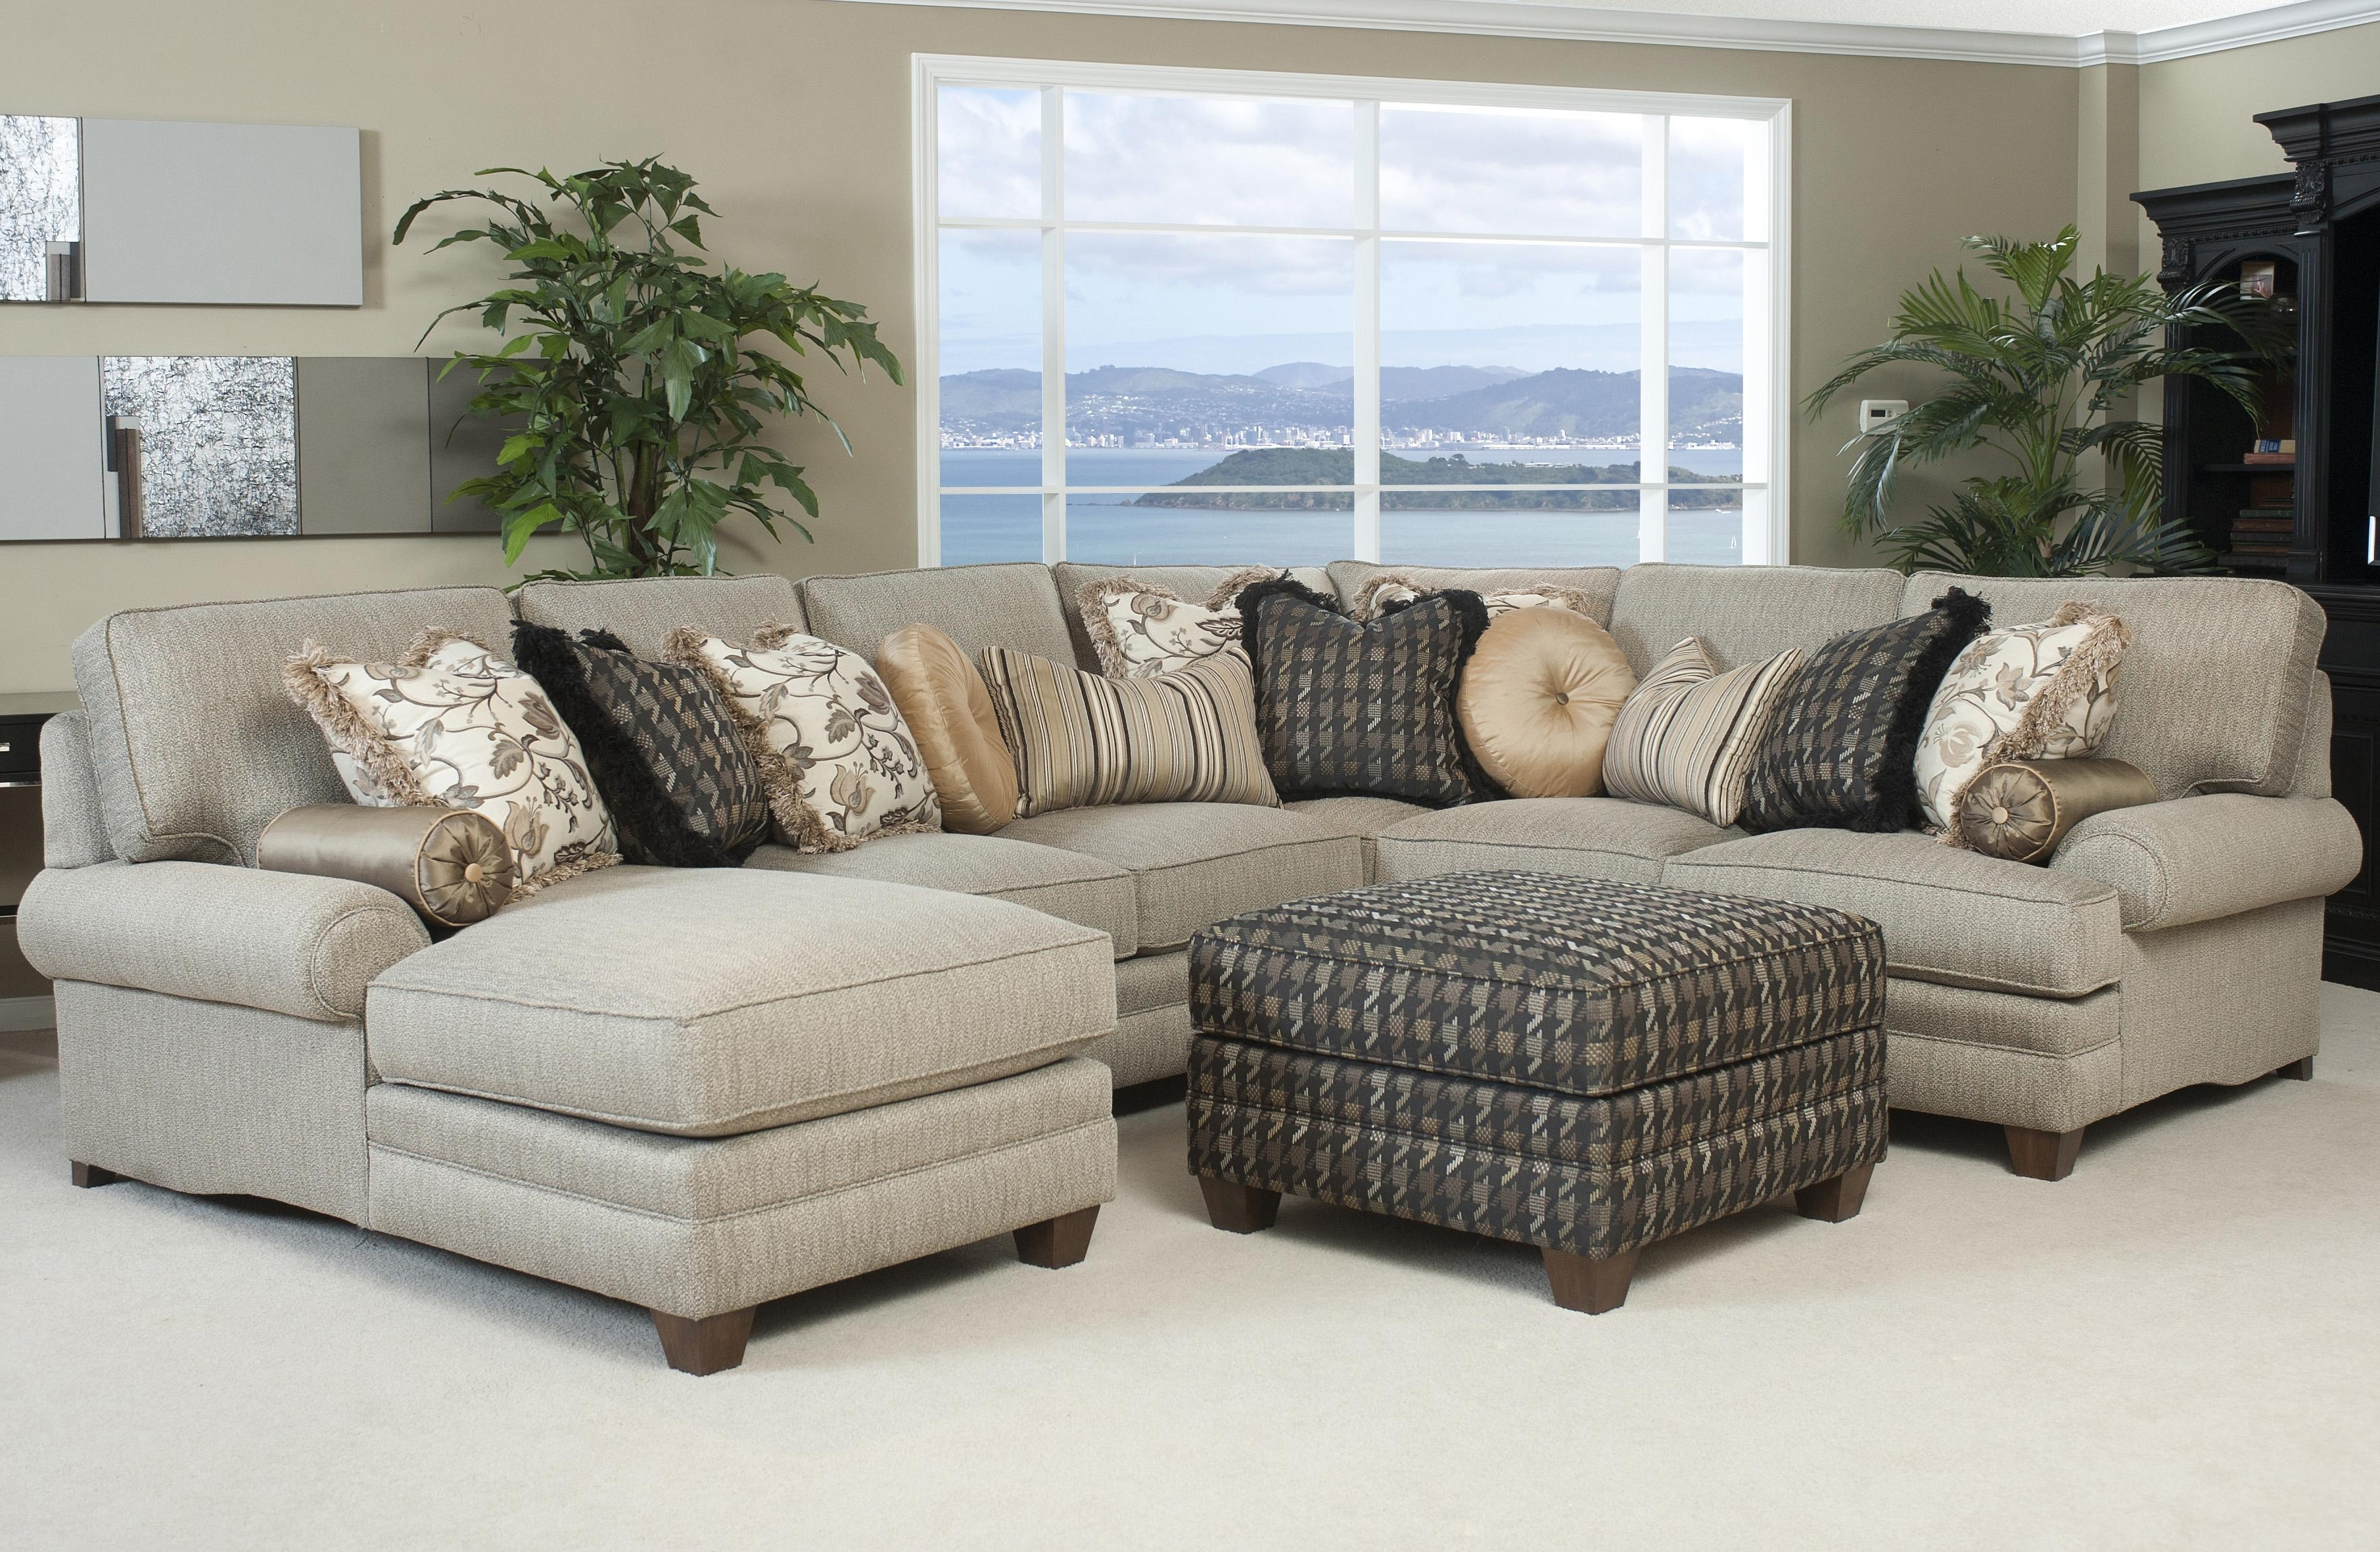 Latest Microfiber Sectional Sofas Pertaining To Best Traditional Sectional Sofas With Chaise Contemporary (View 10 of 20)